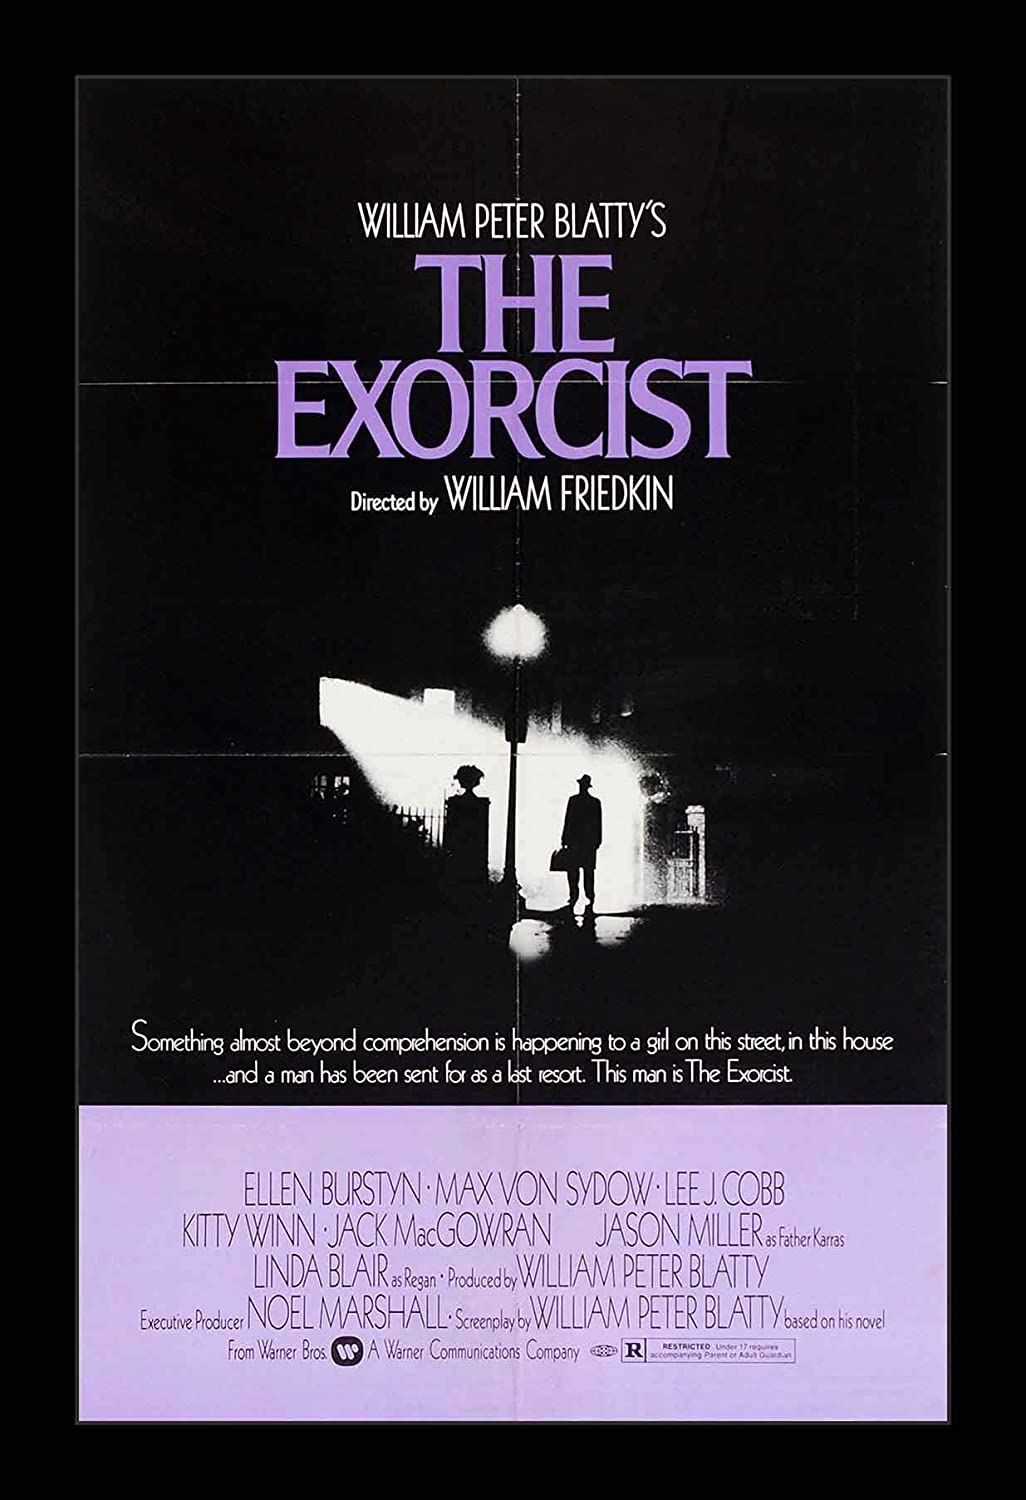 Wallspace 11x17 Framed Movie Poster - The Exorcist